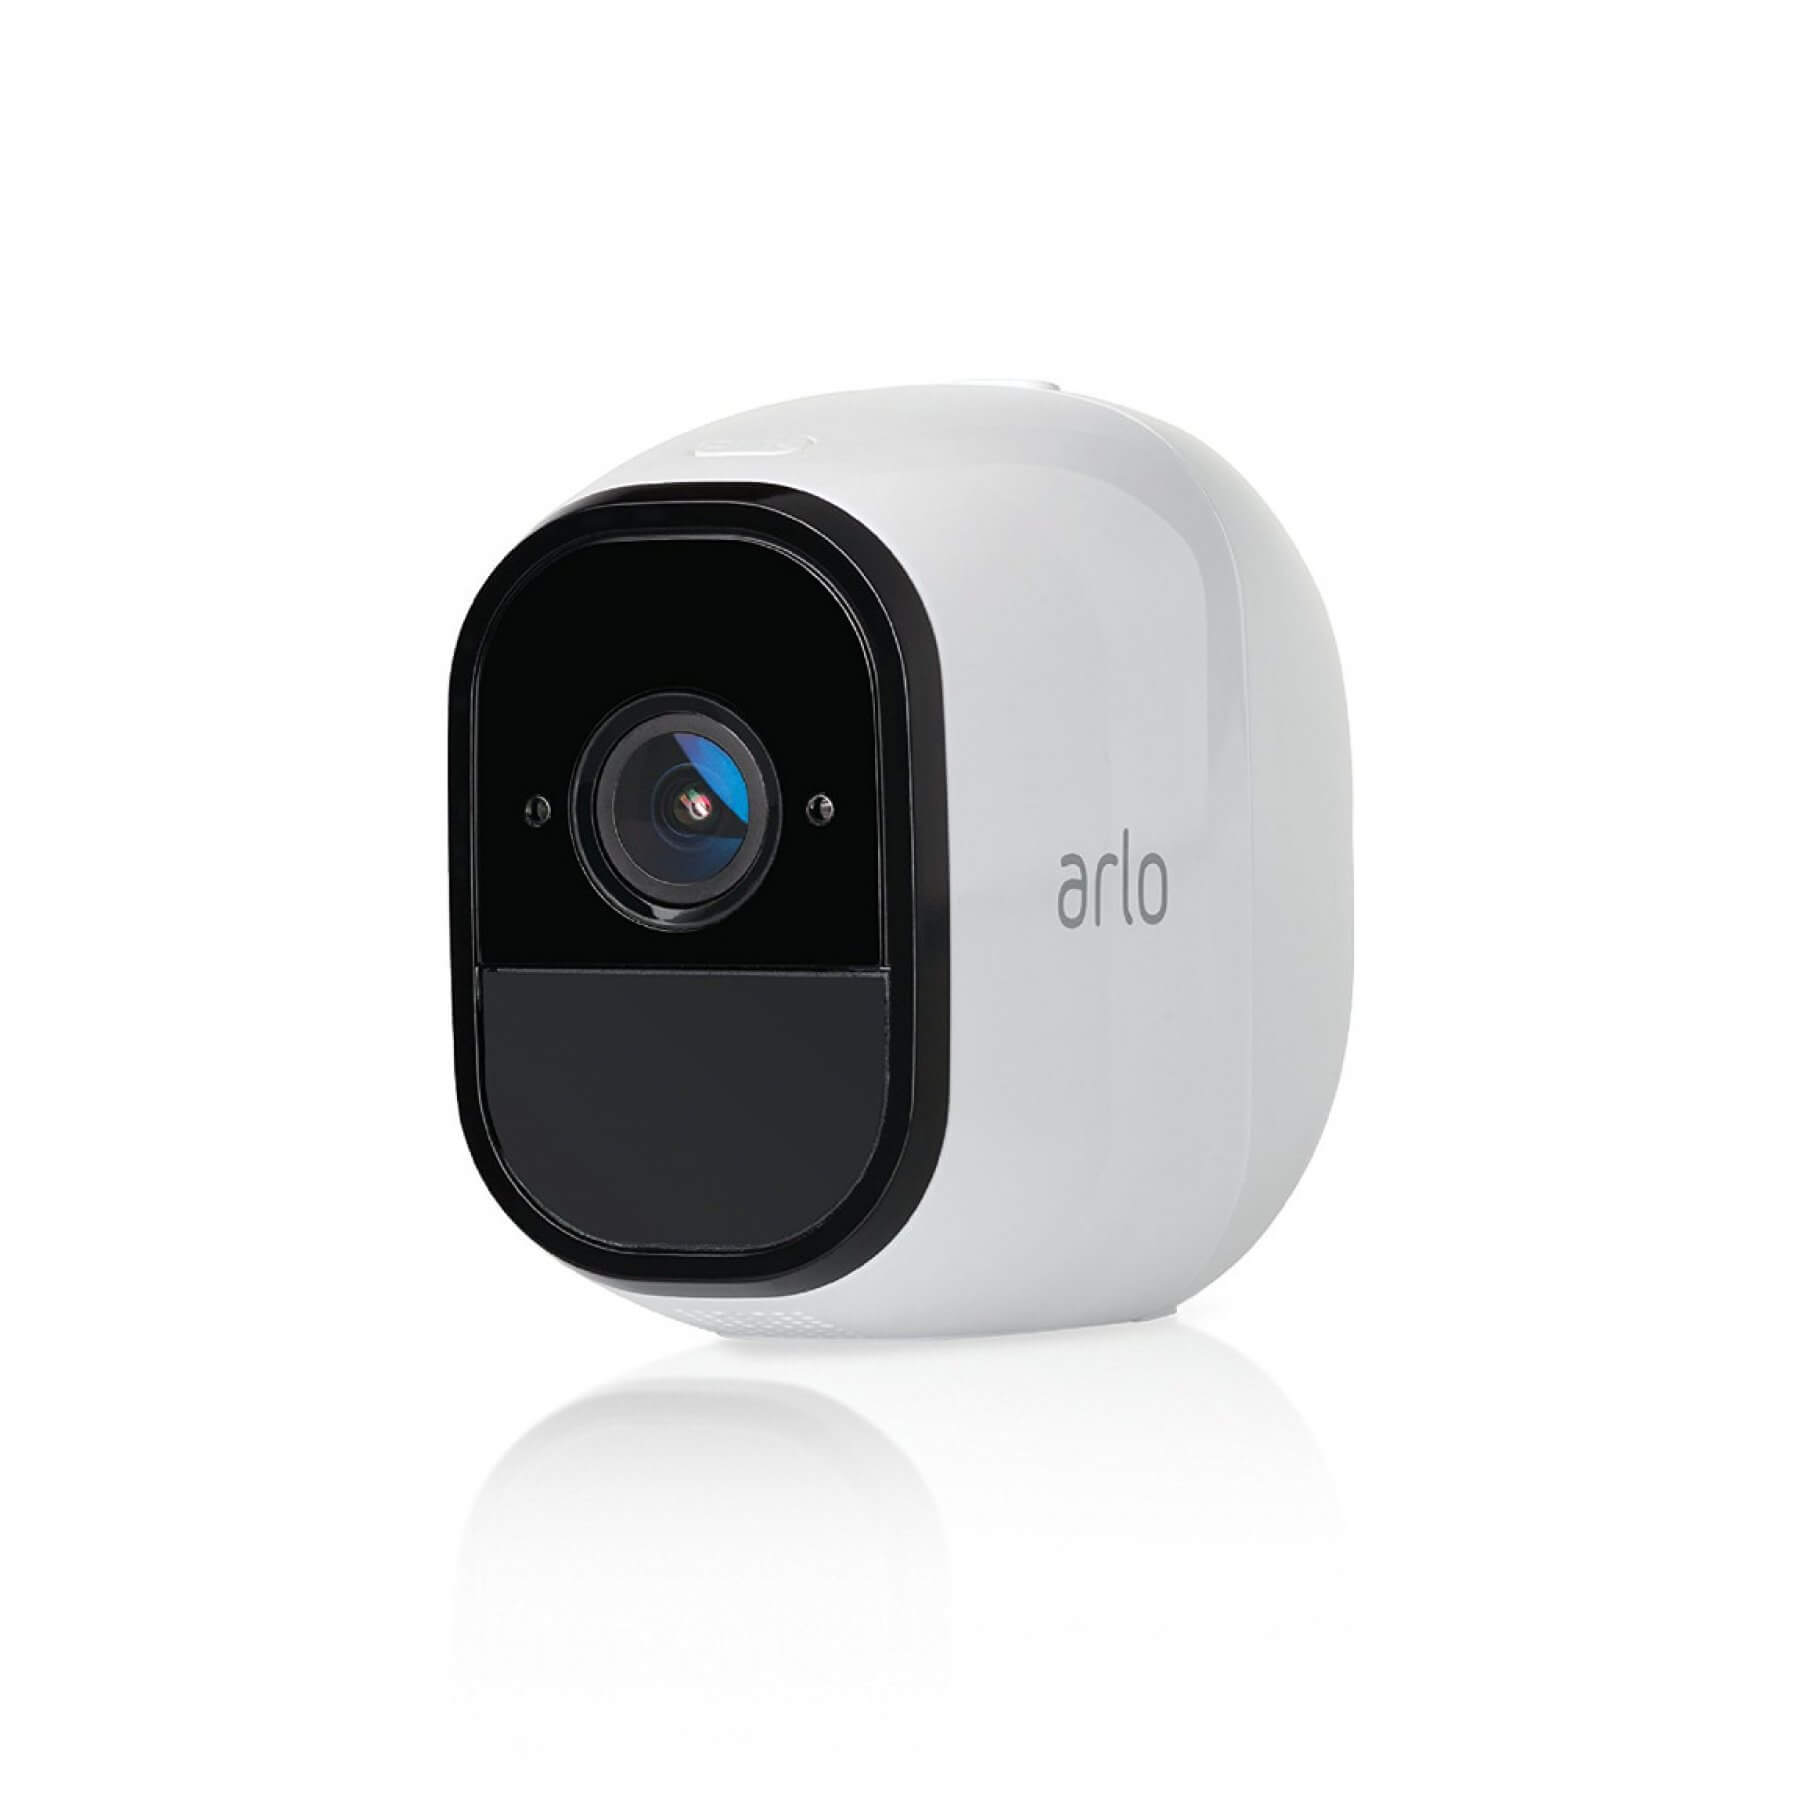 netgear arlo hd kamera vmc3030 innenkameras video berwachung sicherheit. Black Bedroom Furniture Sets. Home Design Ideas